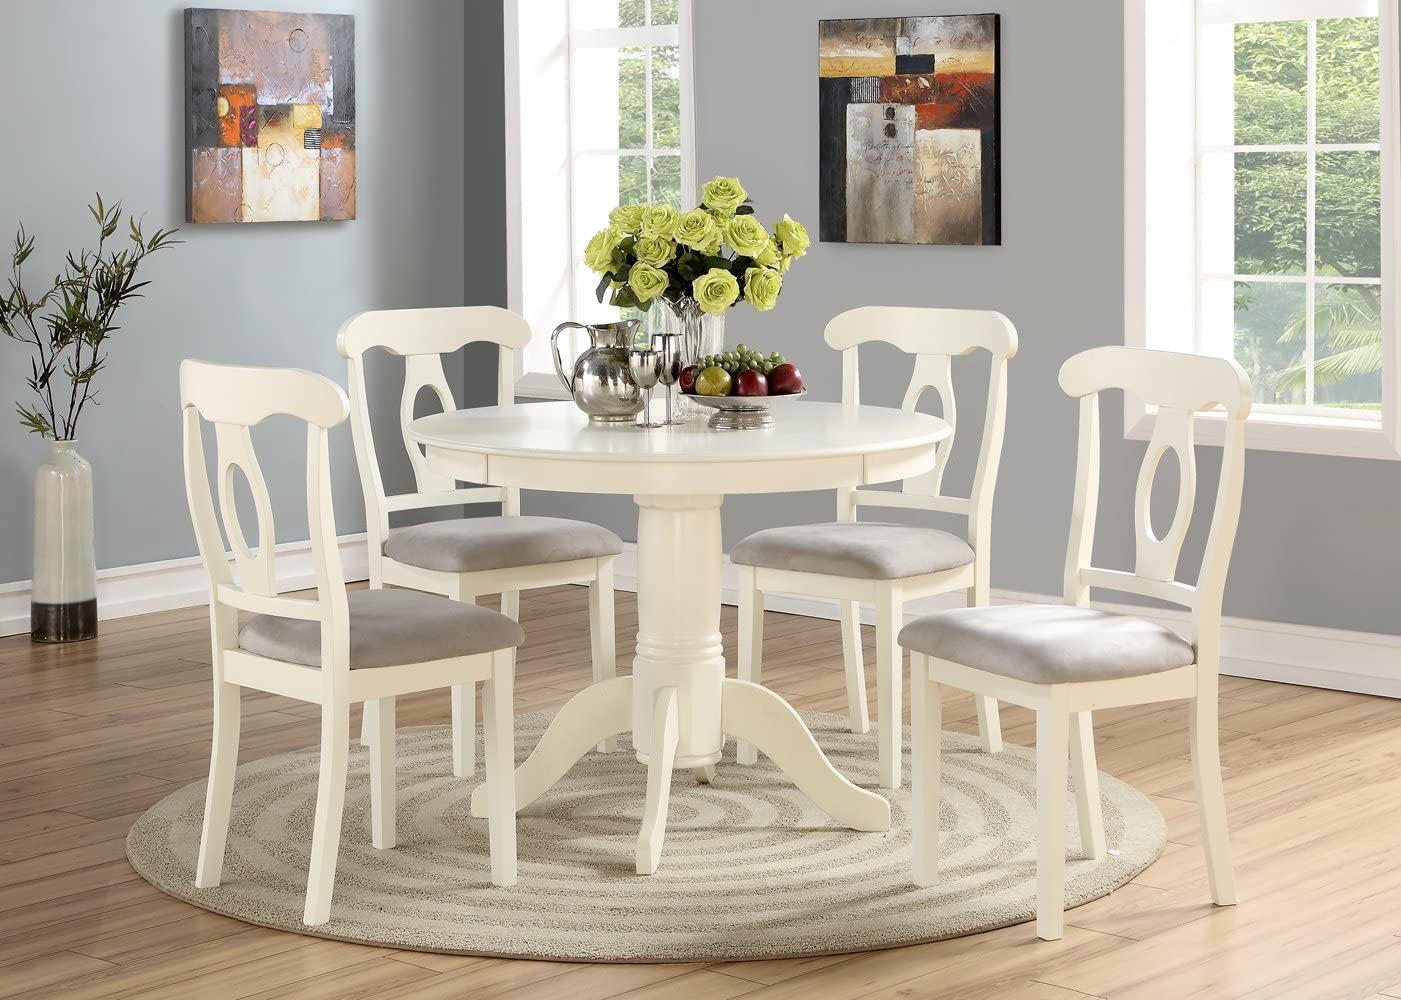 Angel Line 5 Piece Lindsey Dining Set, White Gray